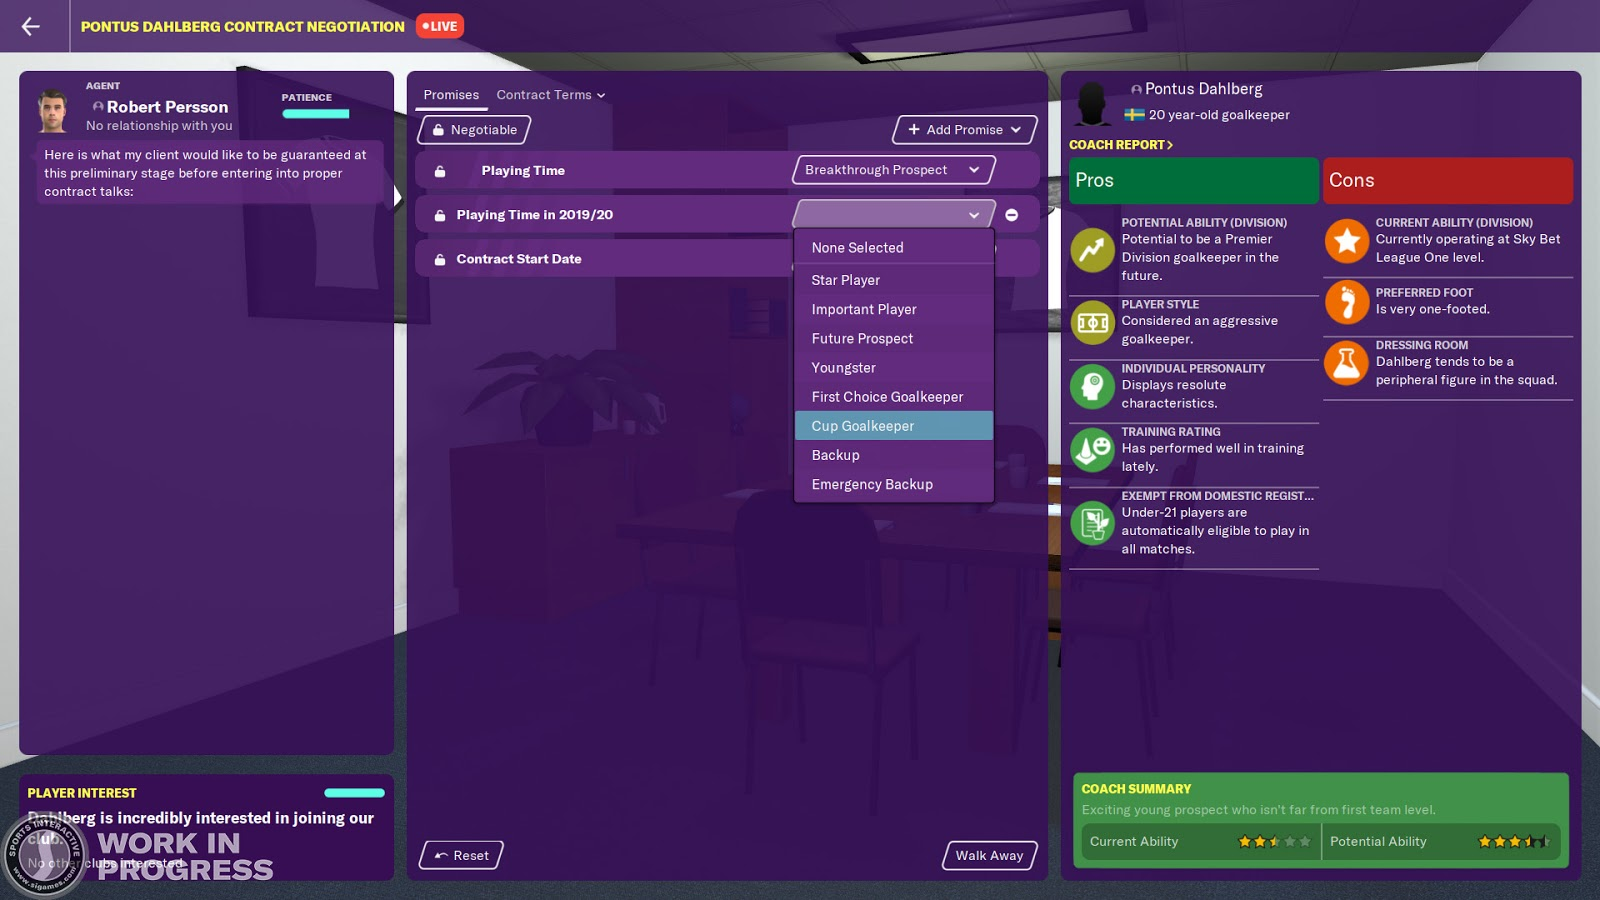 A goalkeeper's contract options in Football Manager 2020